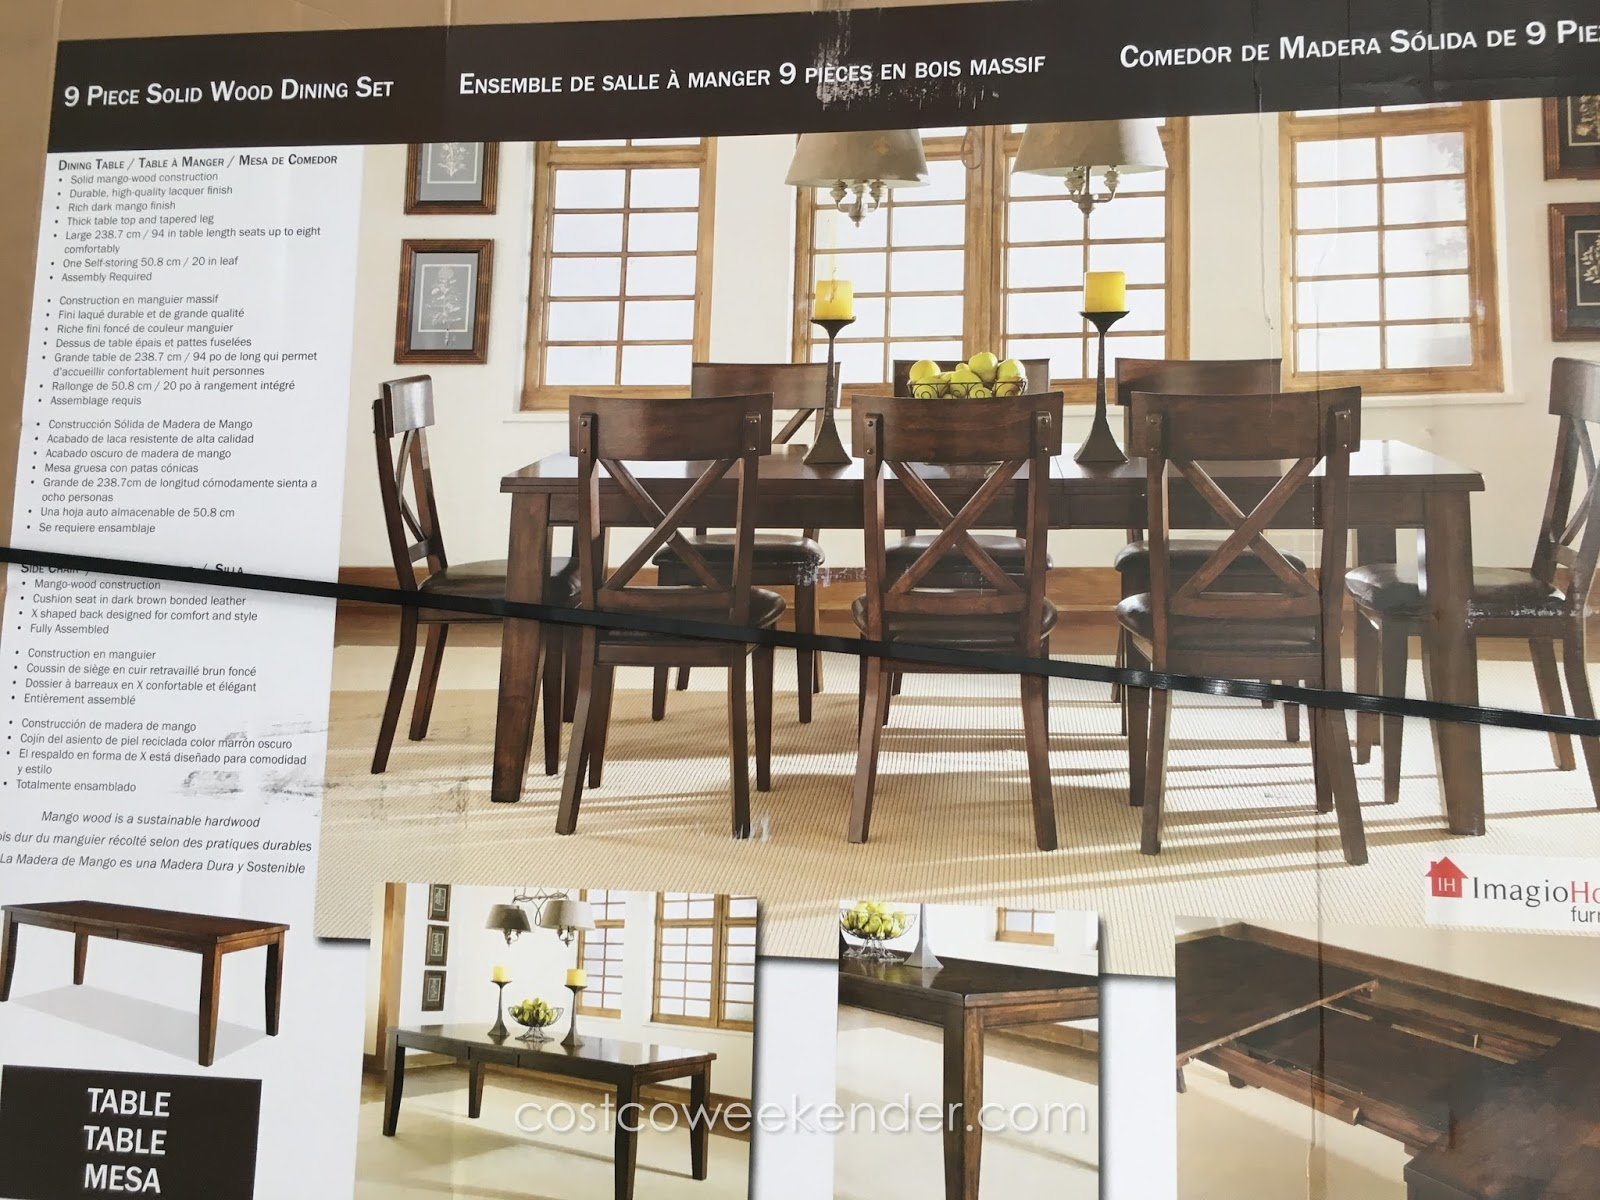 Table A Manger 3M imagio home 9 piece solid wood dining set | costco weekender